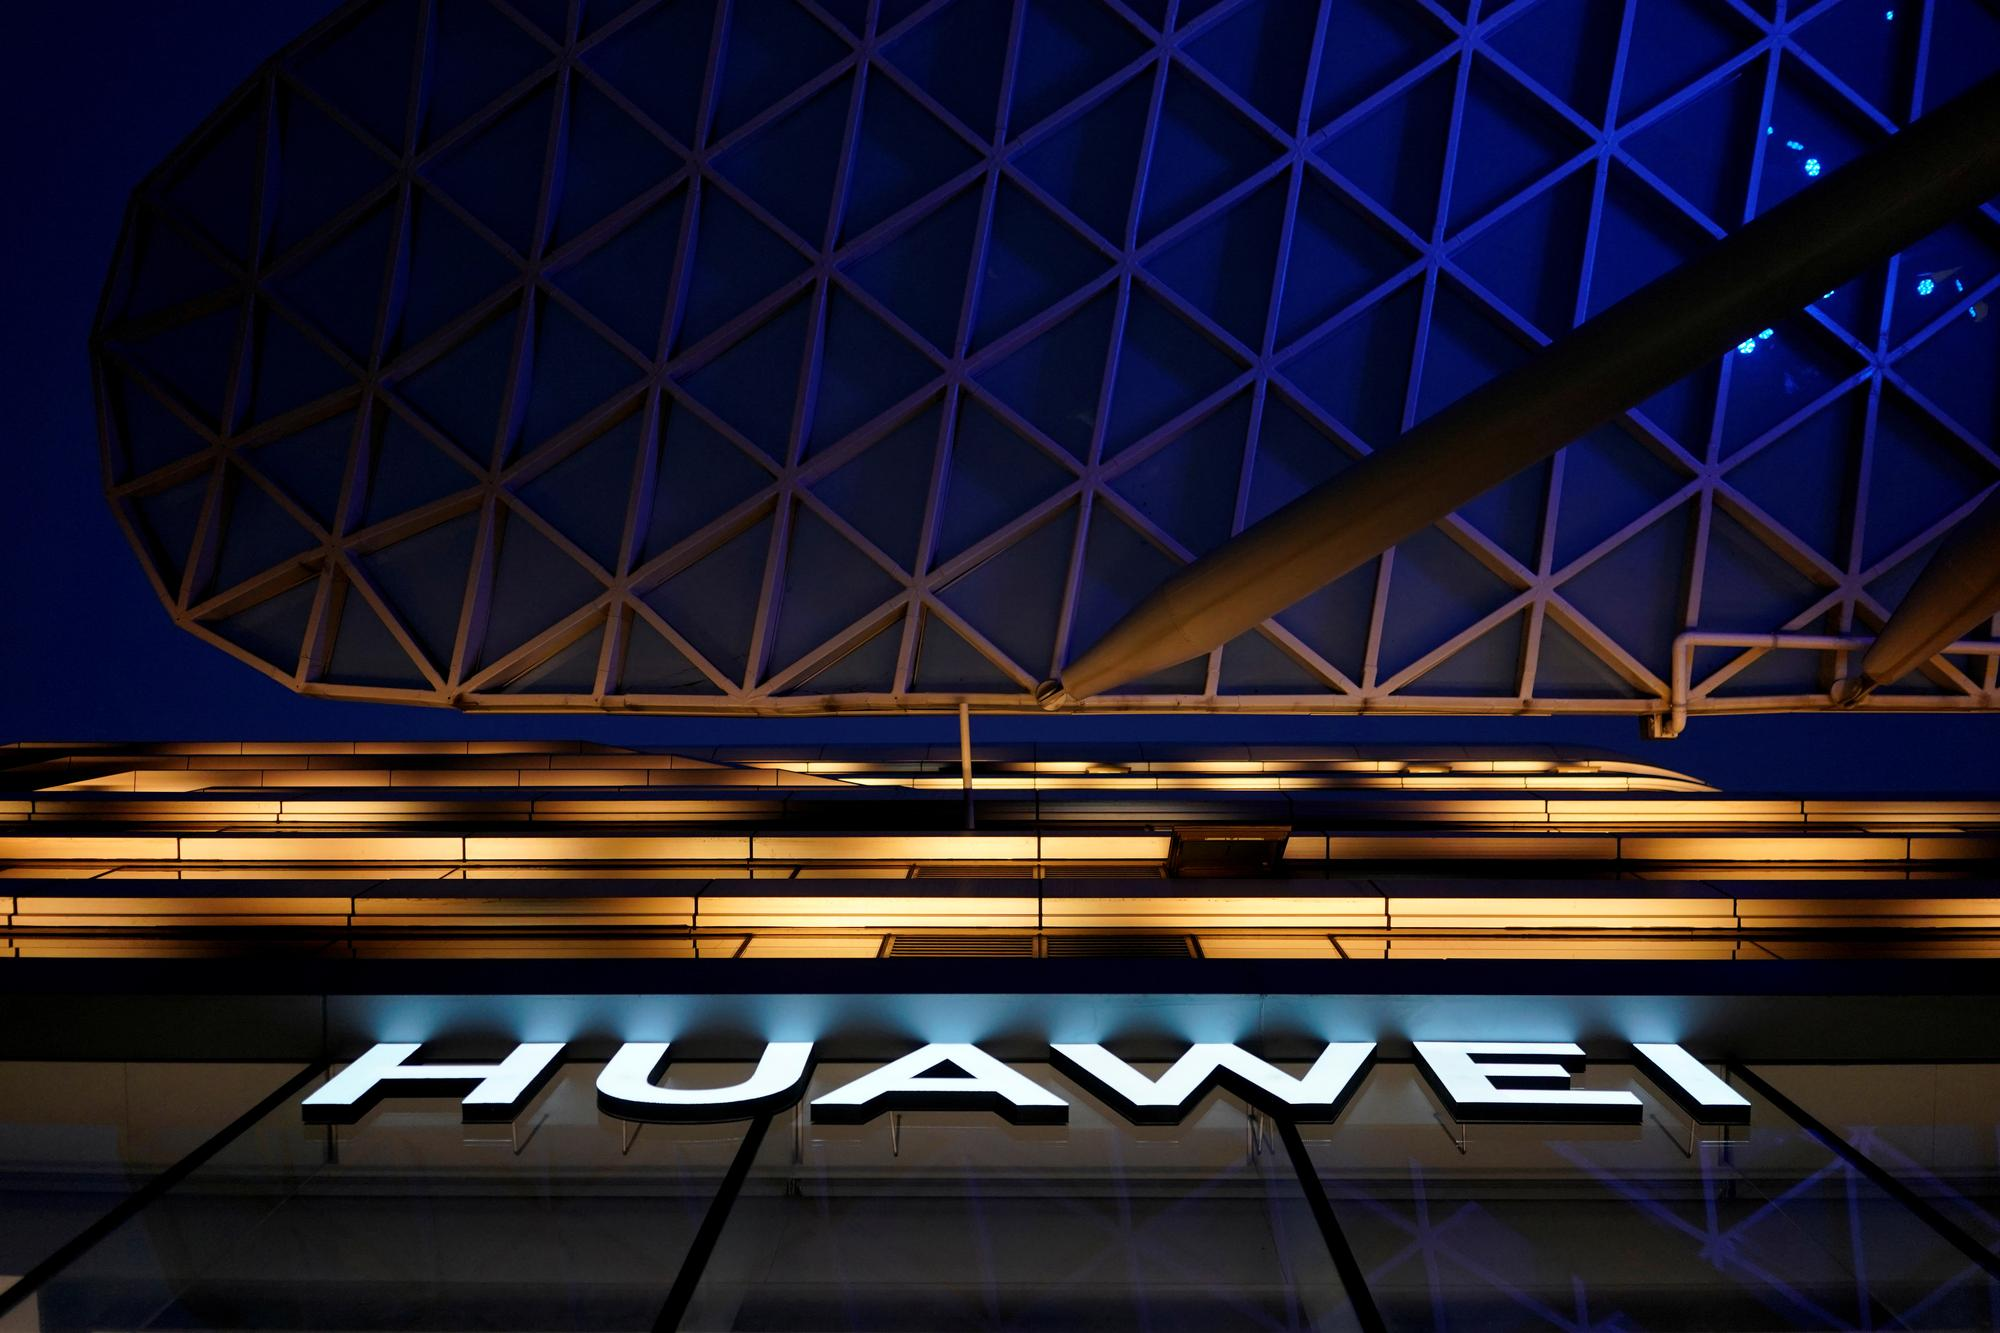 Huawei lawyer tells U.S. jury spelling errors, video show rival stole trade secrets